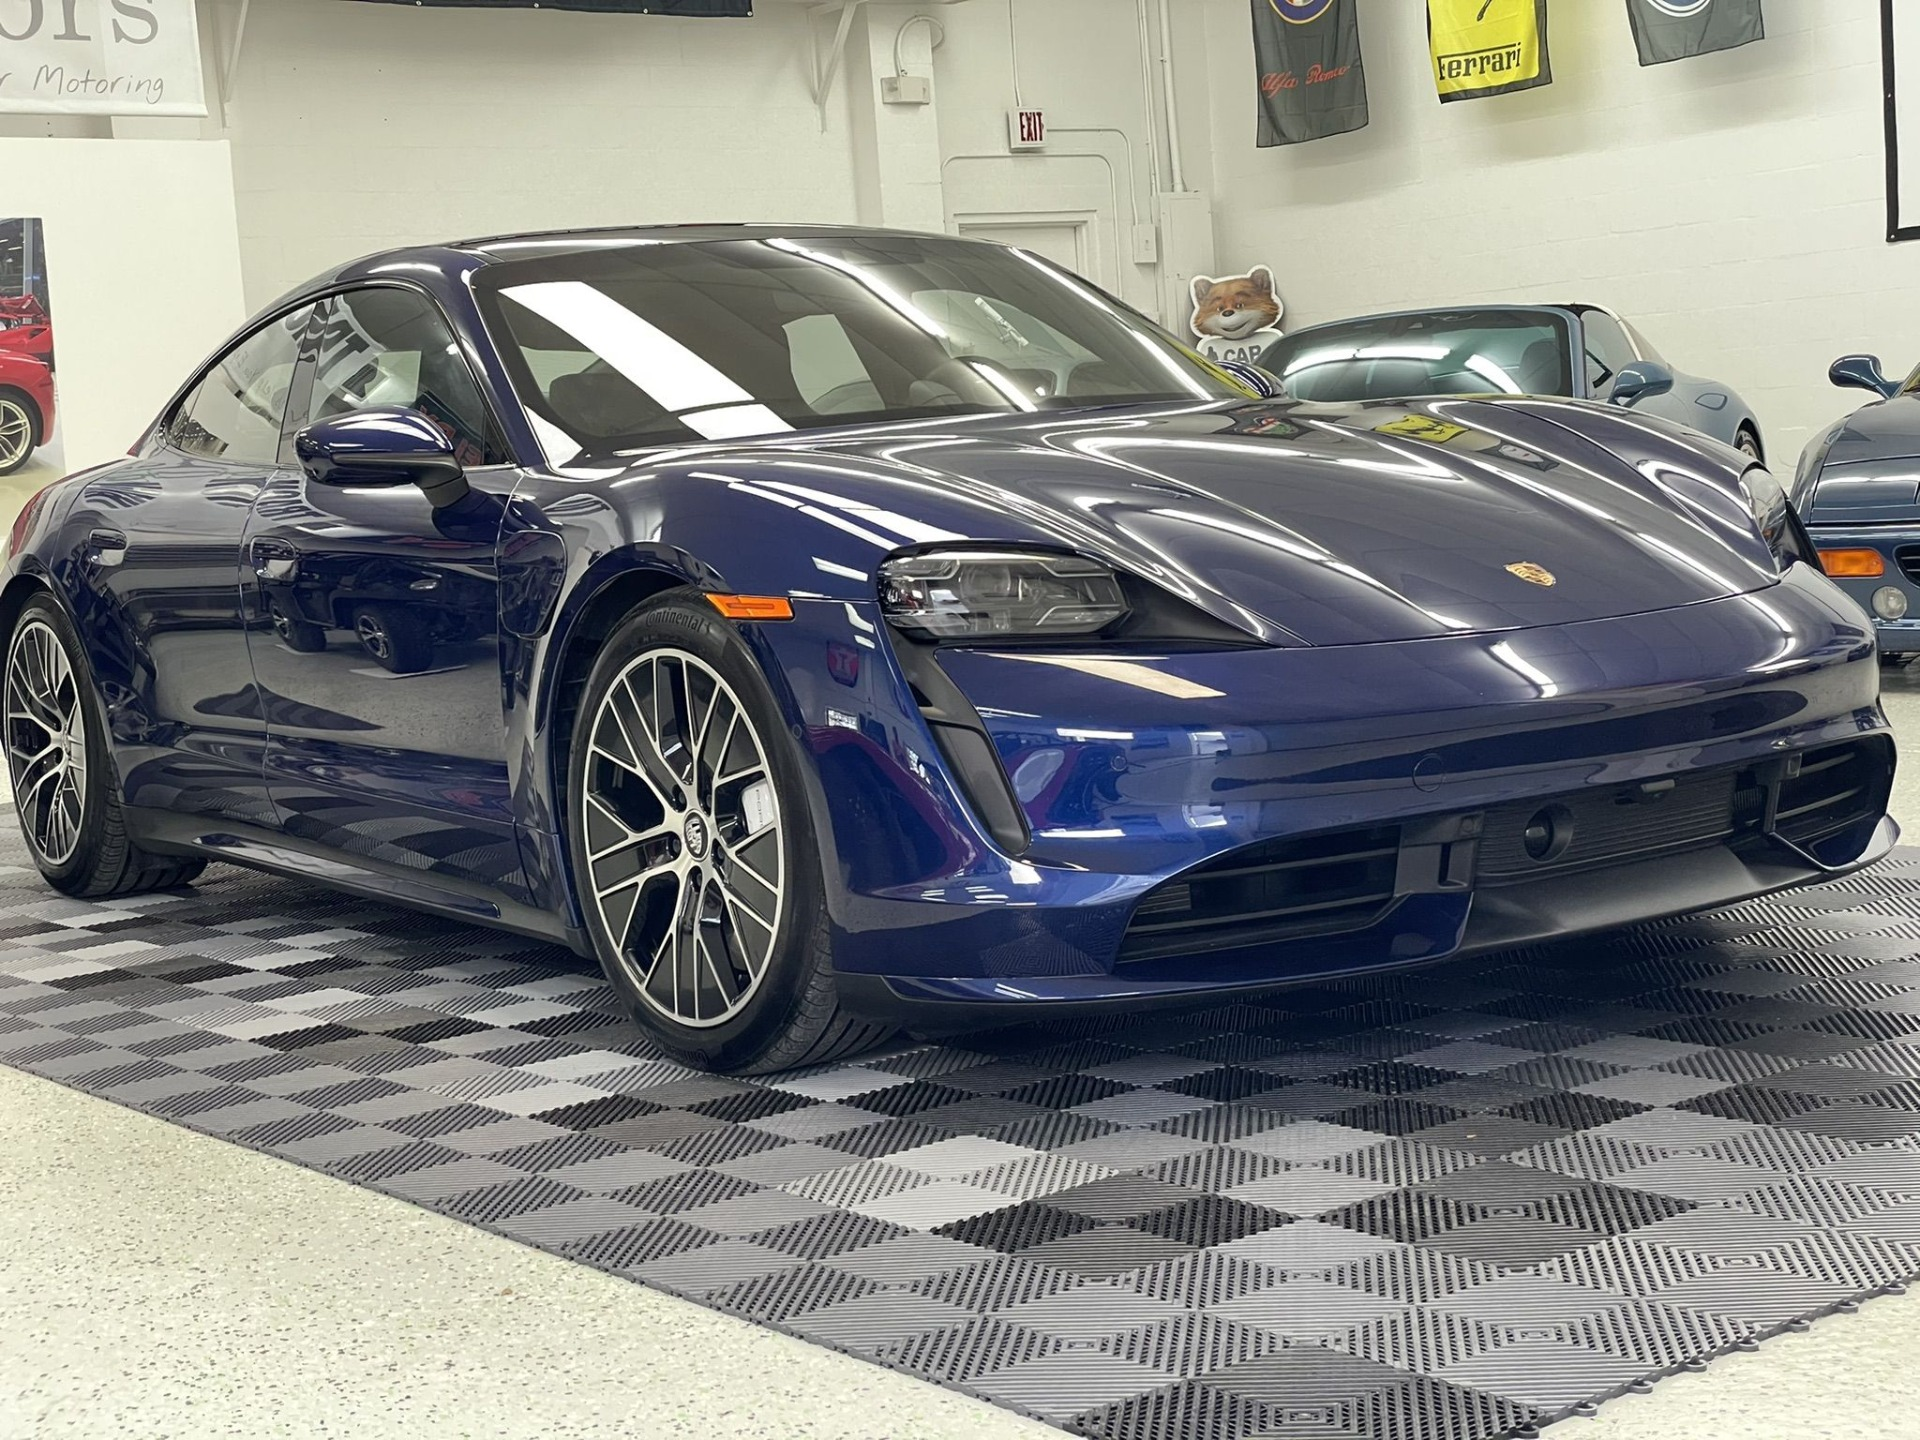 Used 2020 Porsche Taycan Turbo for sale Sold at Track and Field Motors in Safety Harbor FL 34695 1